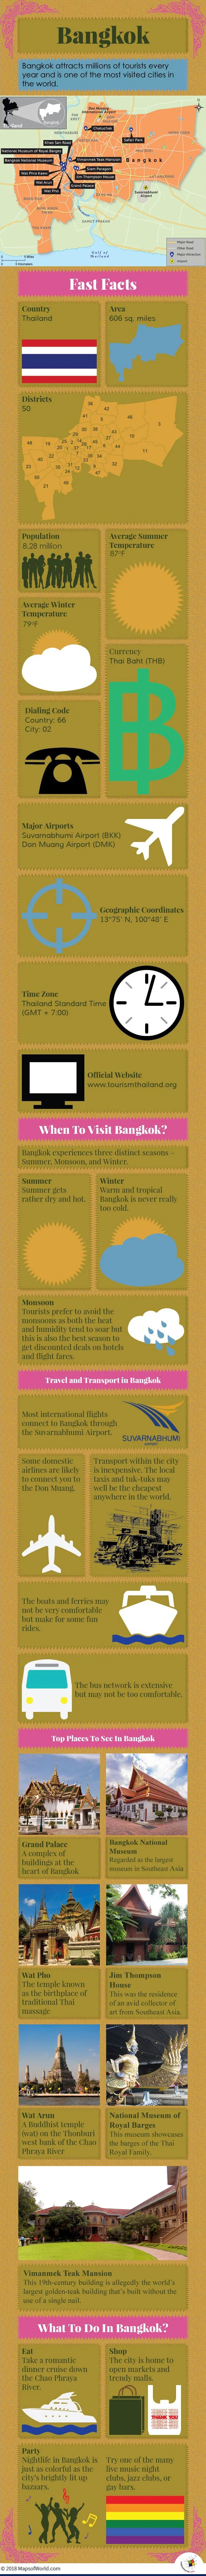 Infographic Depicting Bangkok Tourist Attractions